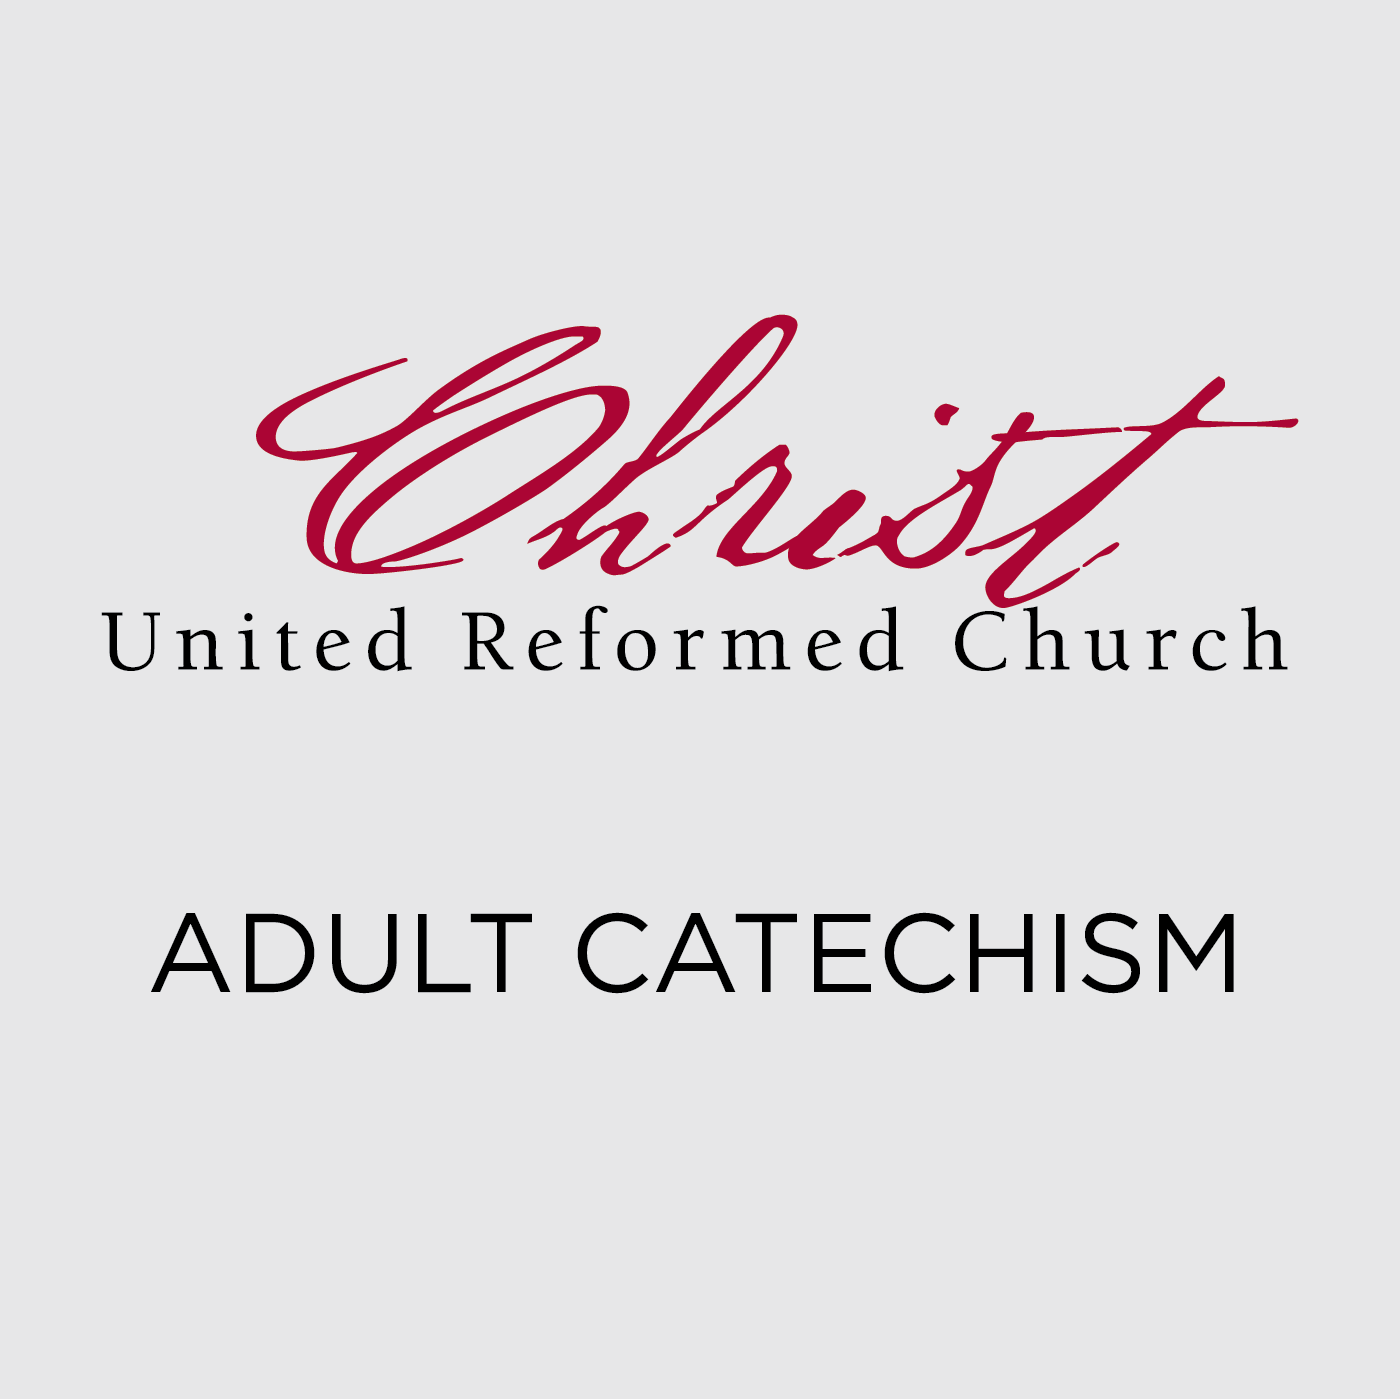 Adult Catechism - Christ United Reformed Church